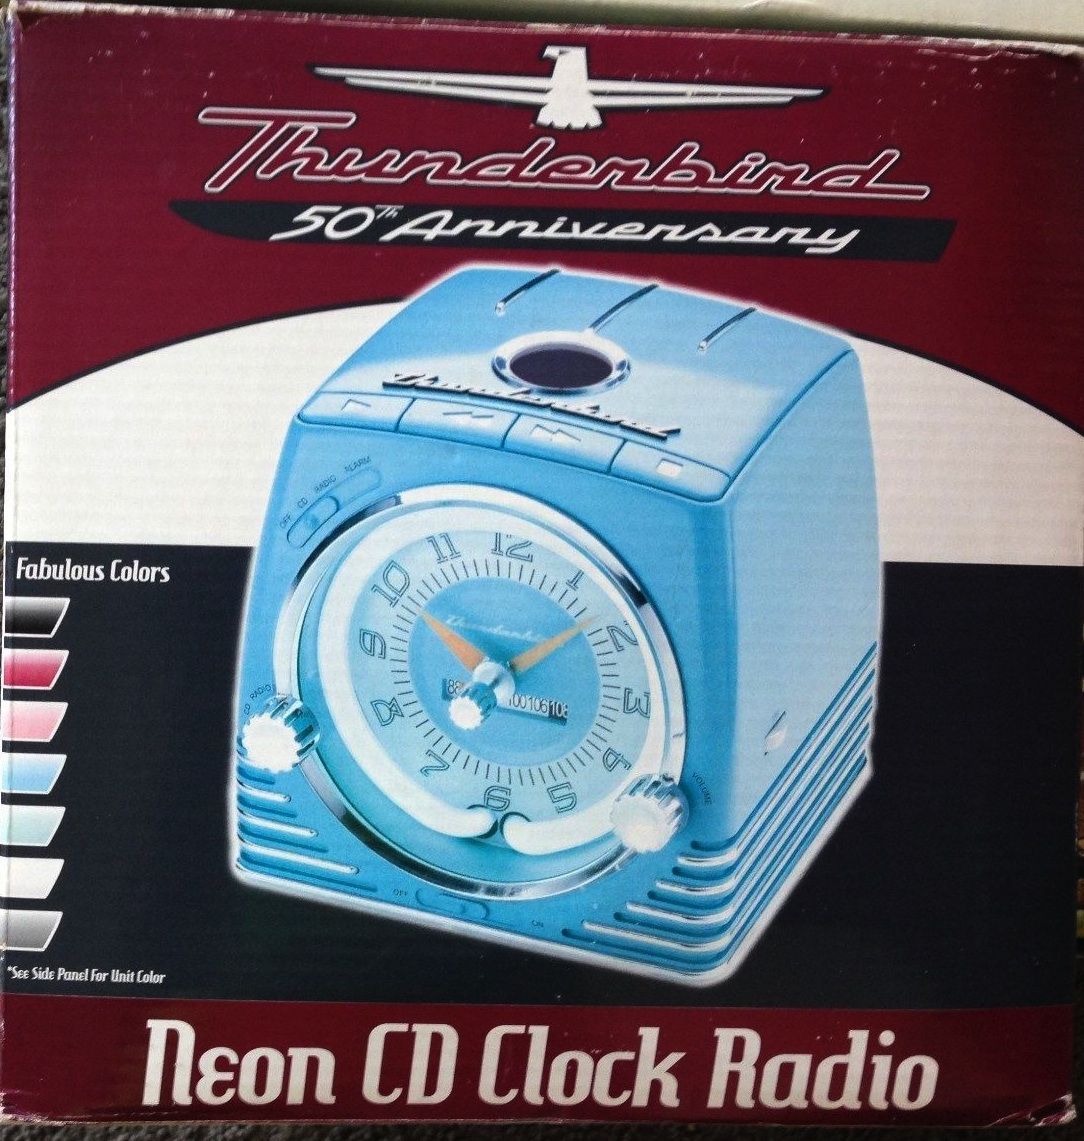 thunderbird neon clock radio cd player combo. Black Bedroom Furniture Sets. Home Design Ideas